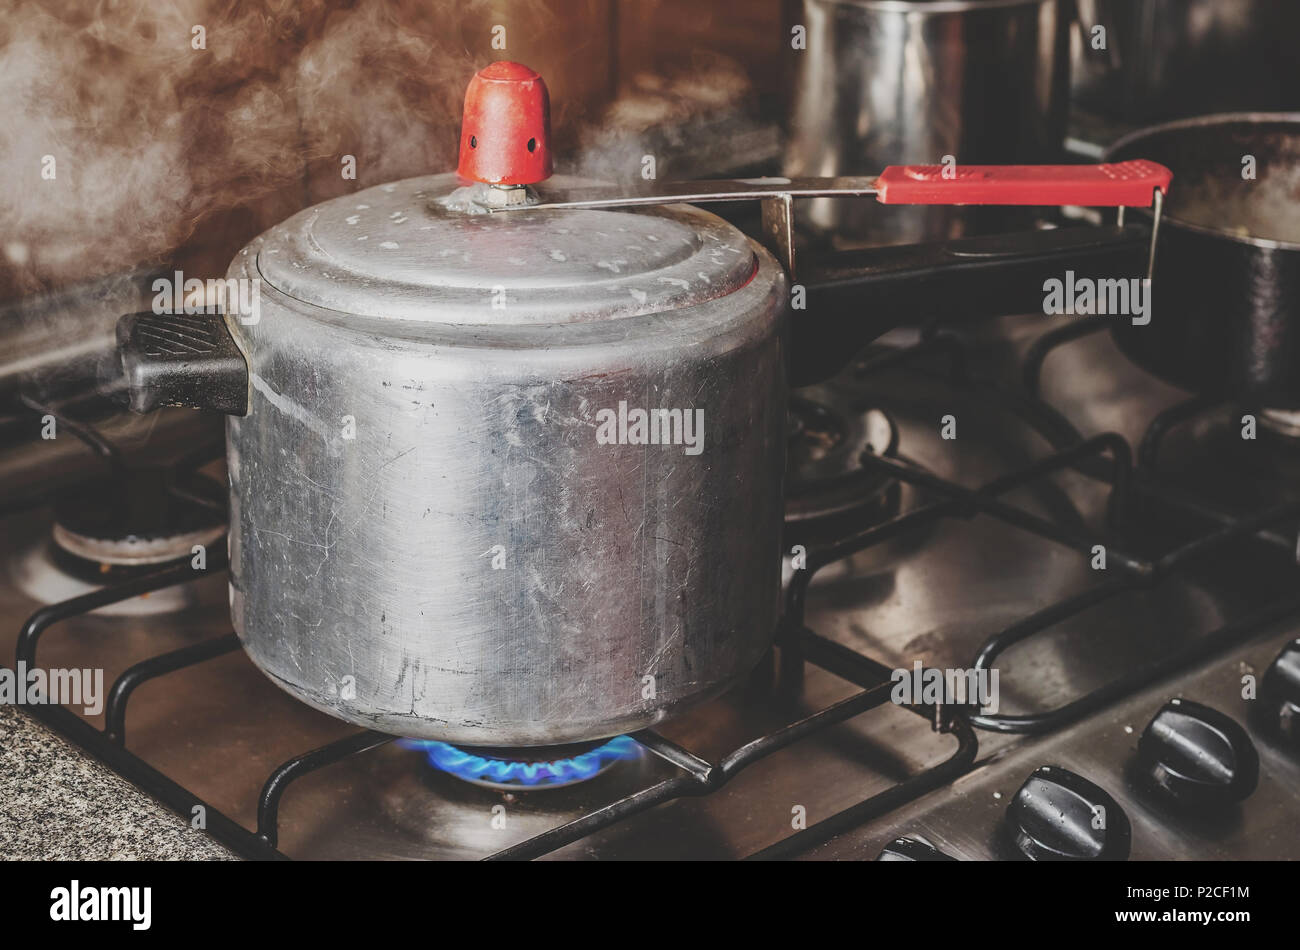 Cooking beans on the pressure cooker. Hot pressure cooker pan with steam getting out. Pressure pan on the stove. - Stock Image